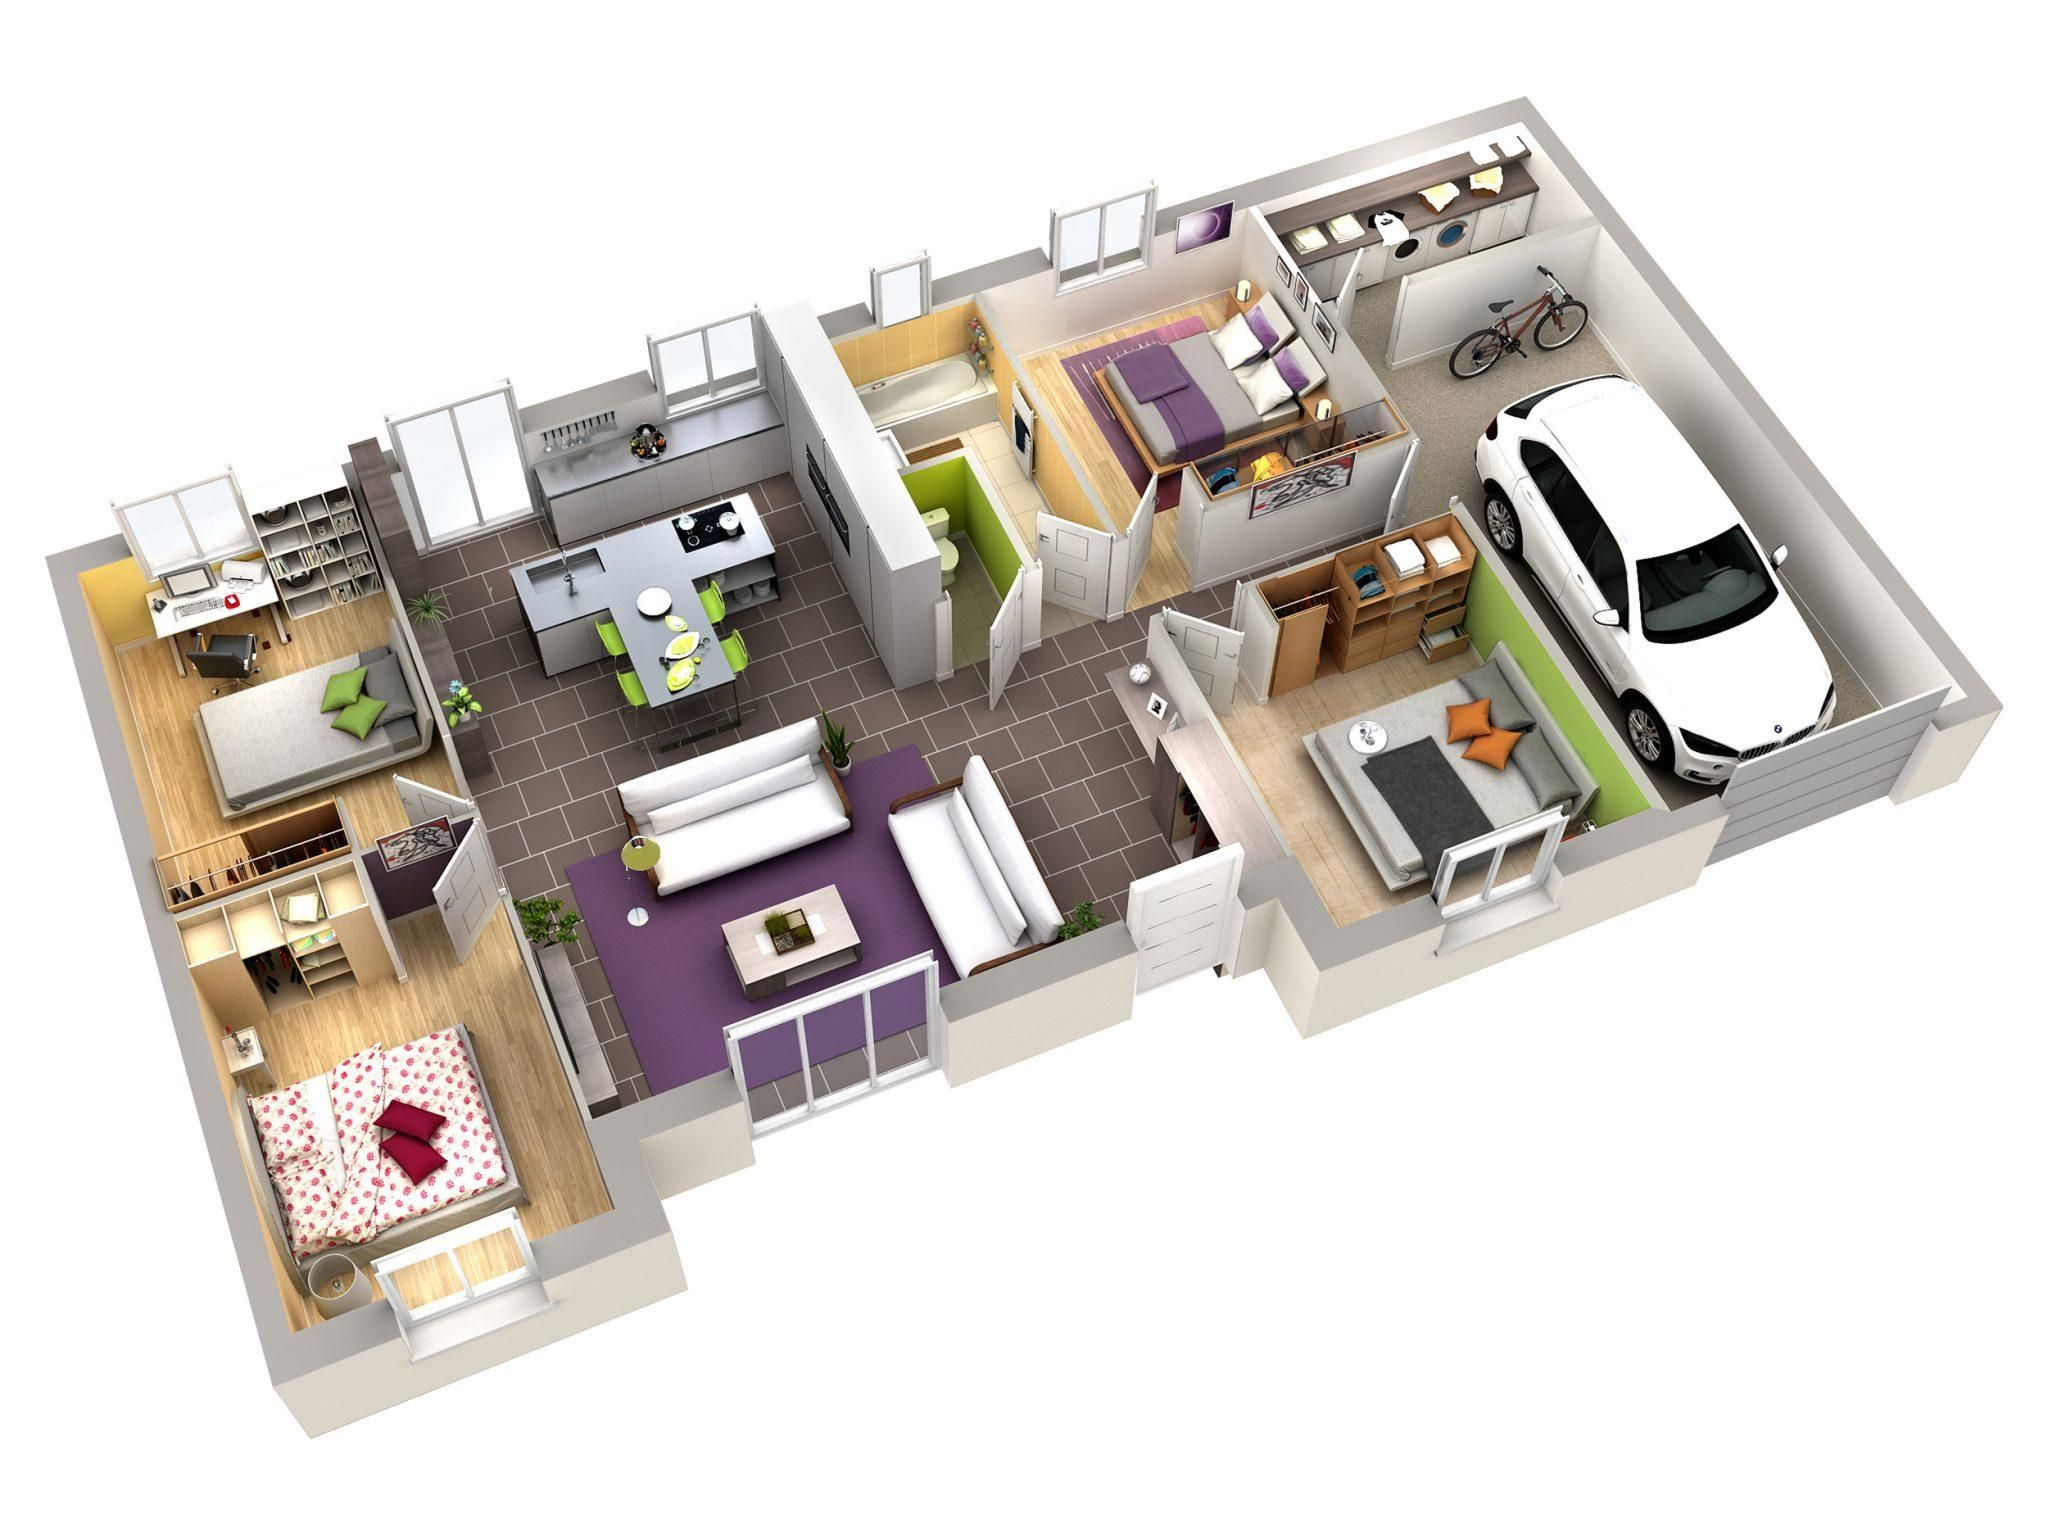 18 Plan Maison Interieur Moderne Home Building Design Small House Layout Sims House